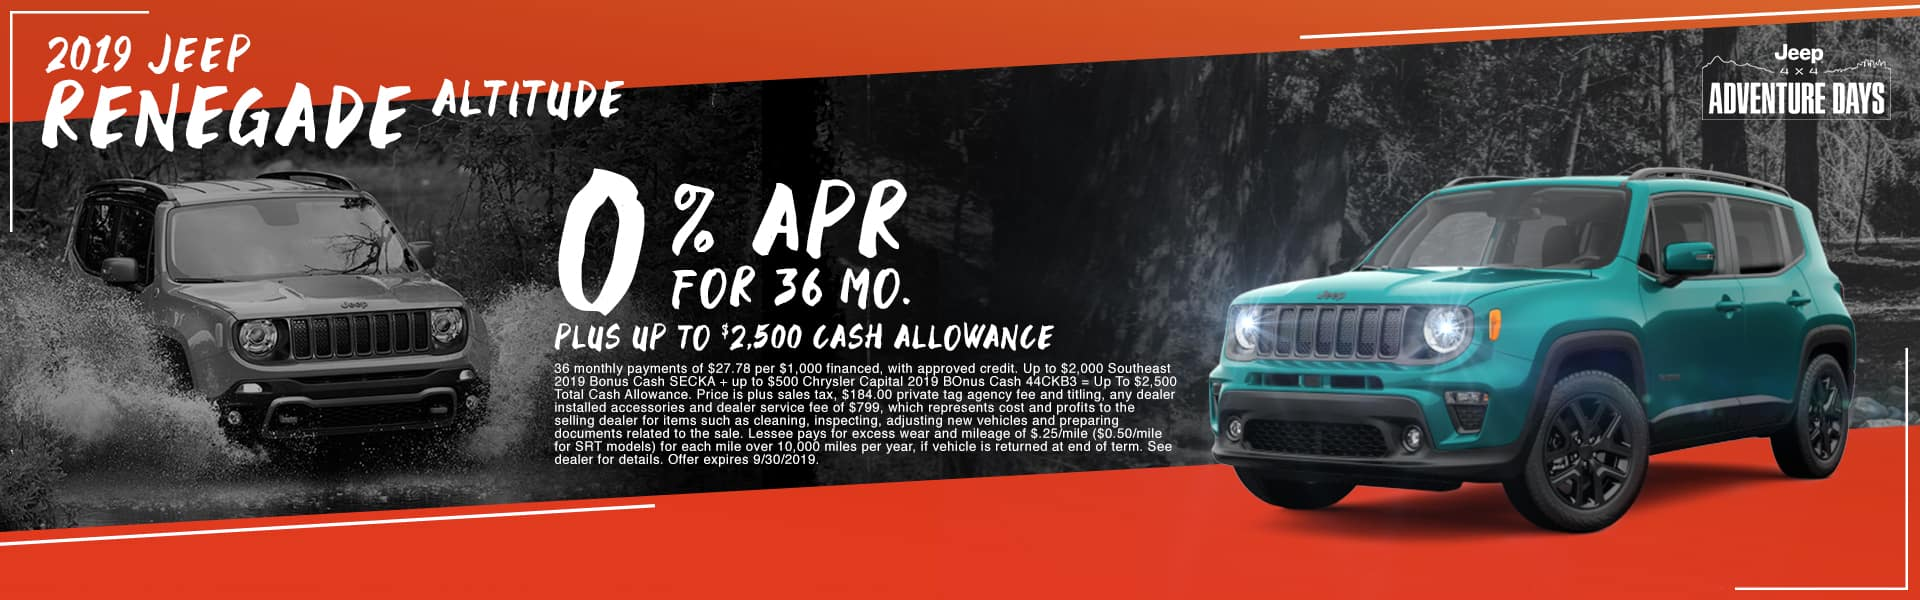 2019 Jeep Renegade Altitude | 0% APR For 36 Months PLUS Up To $2,500 Cash Allowance